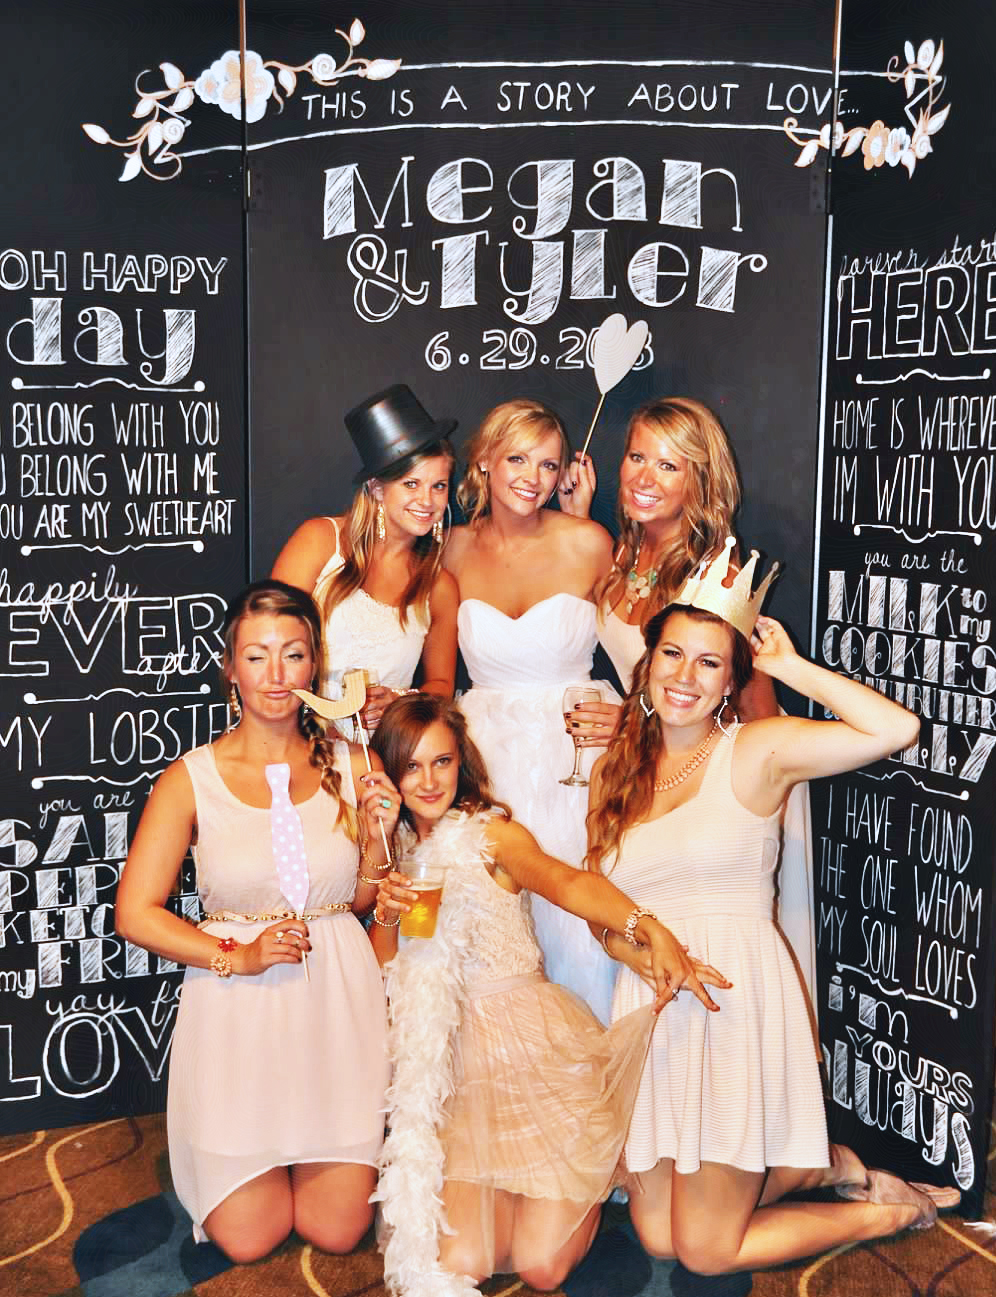 Wedding Photo Booth Ideas 38 Vintage Winners of the DIY